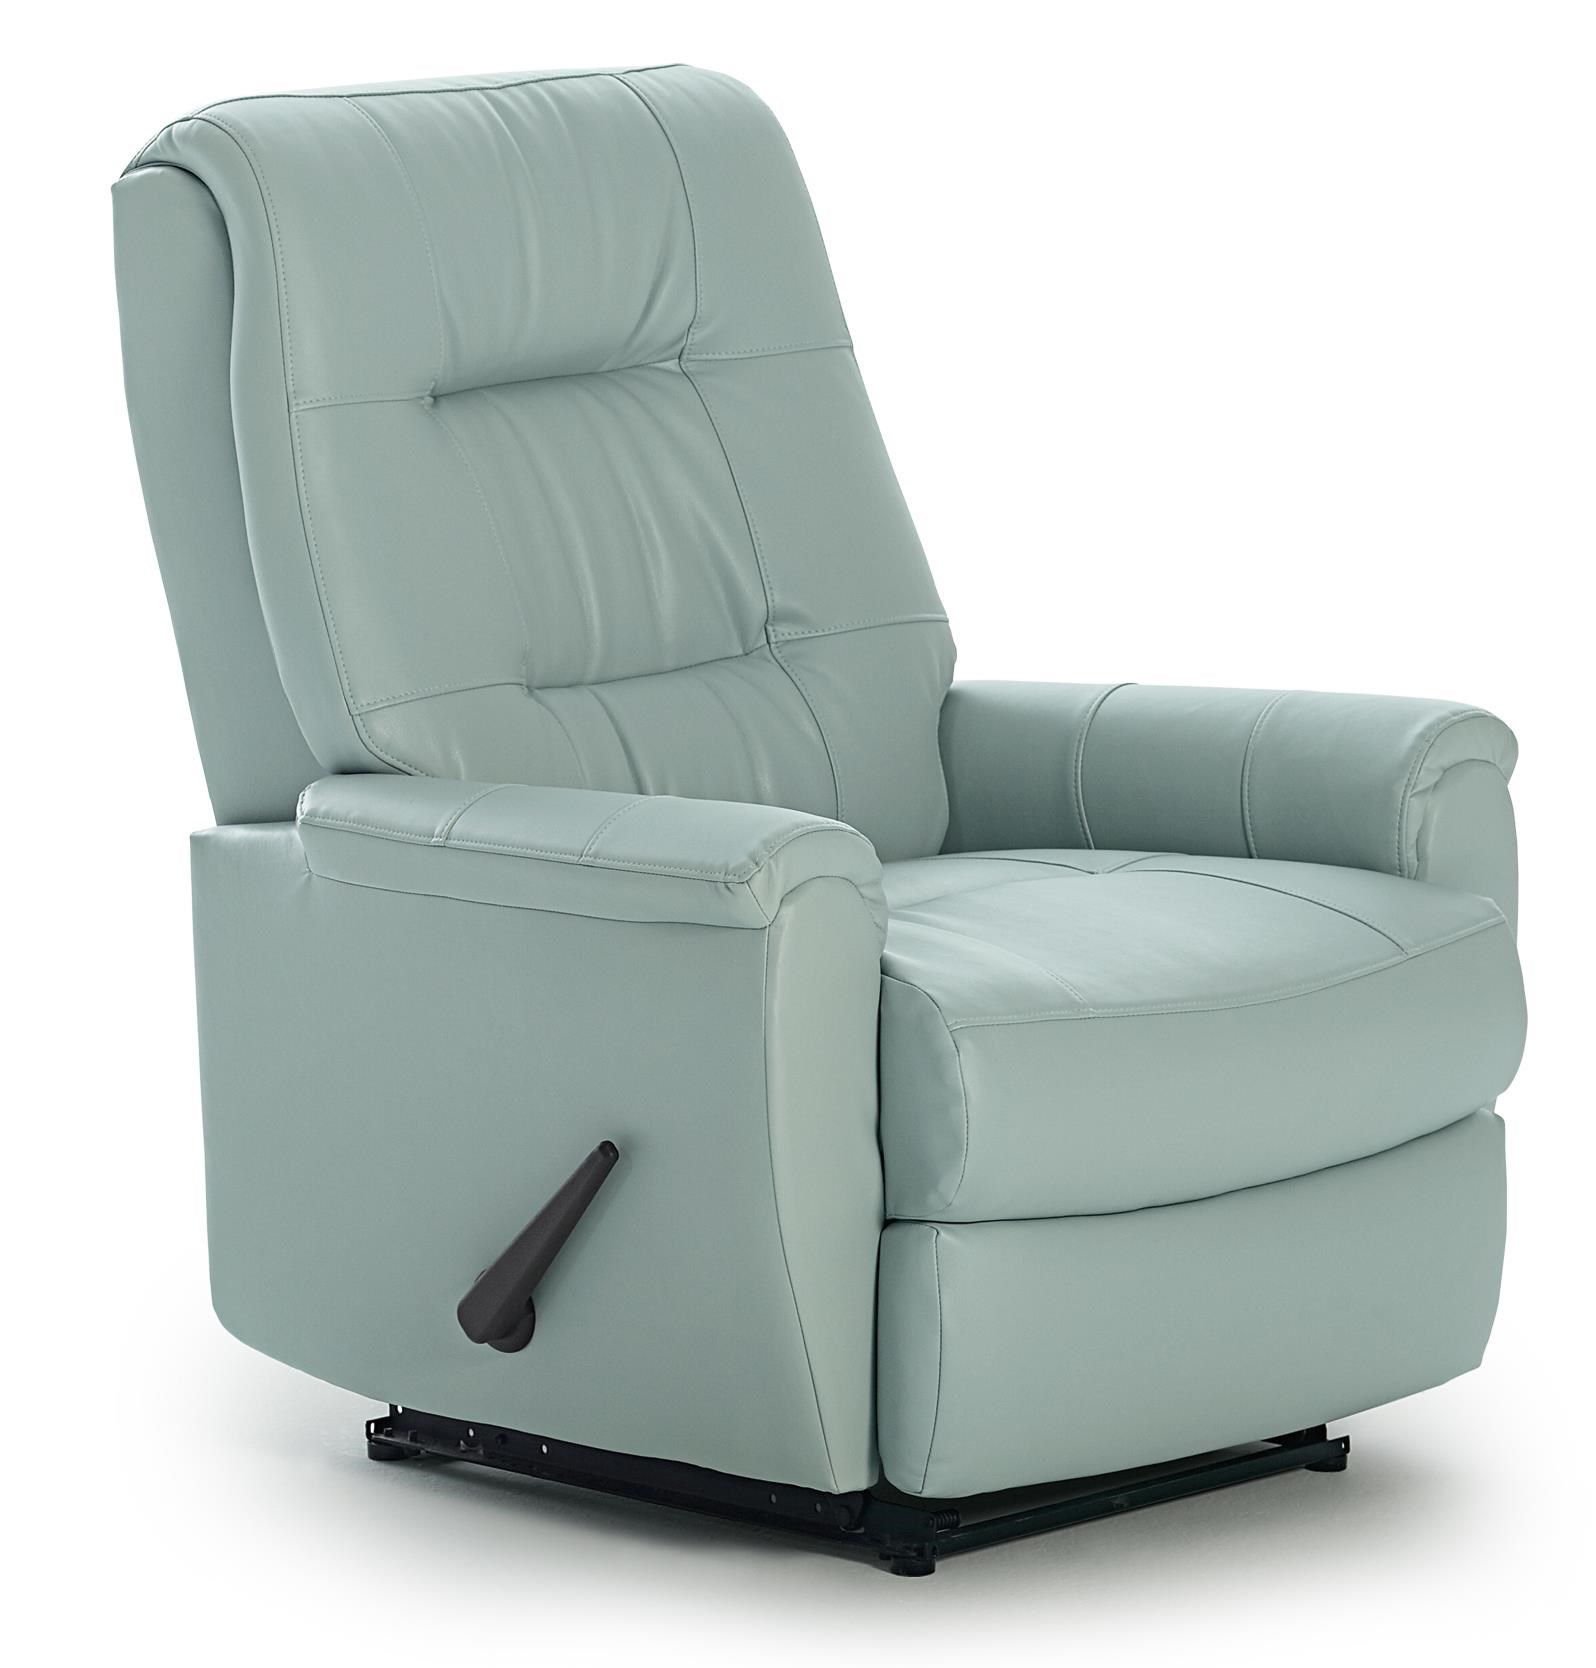 Best Chairs Storytime Series Storytime Recliners Felicia Swivel Glider  Recliner With Button Tufted Back